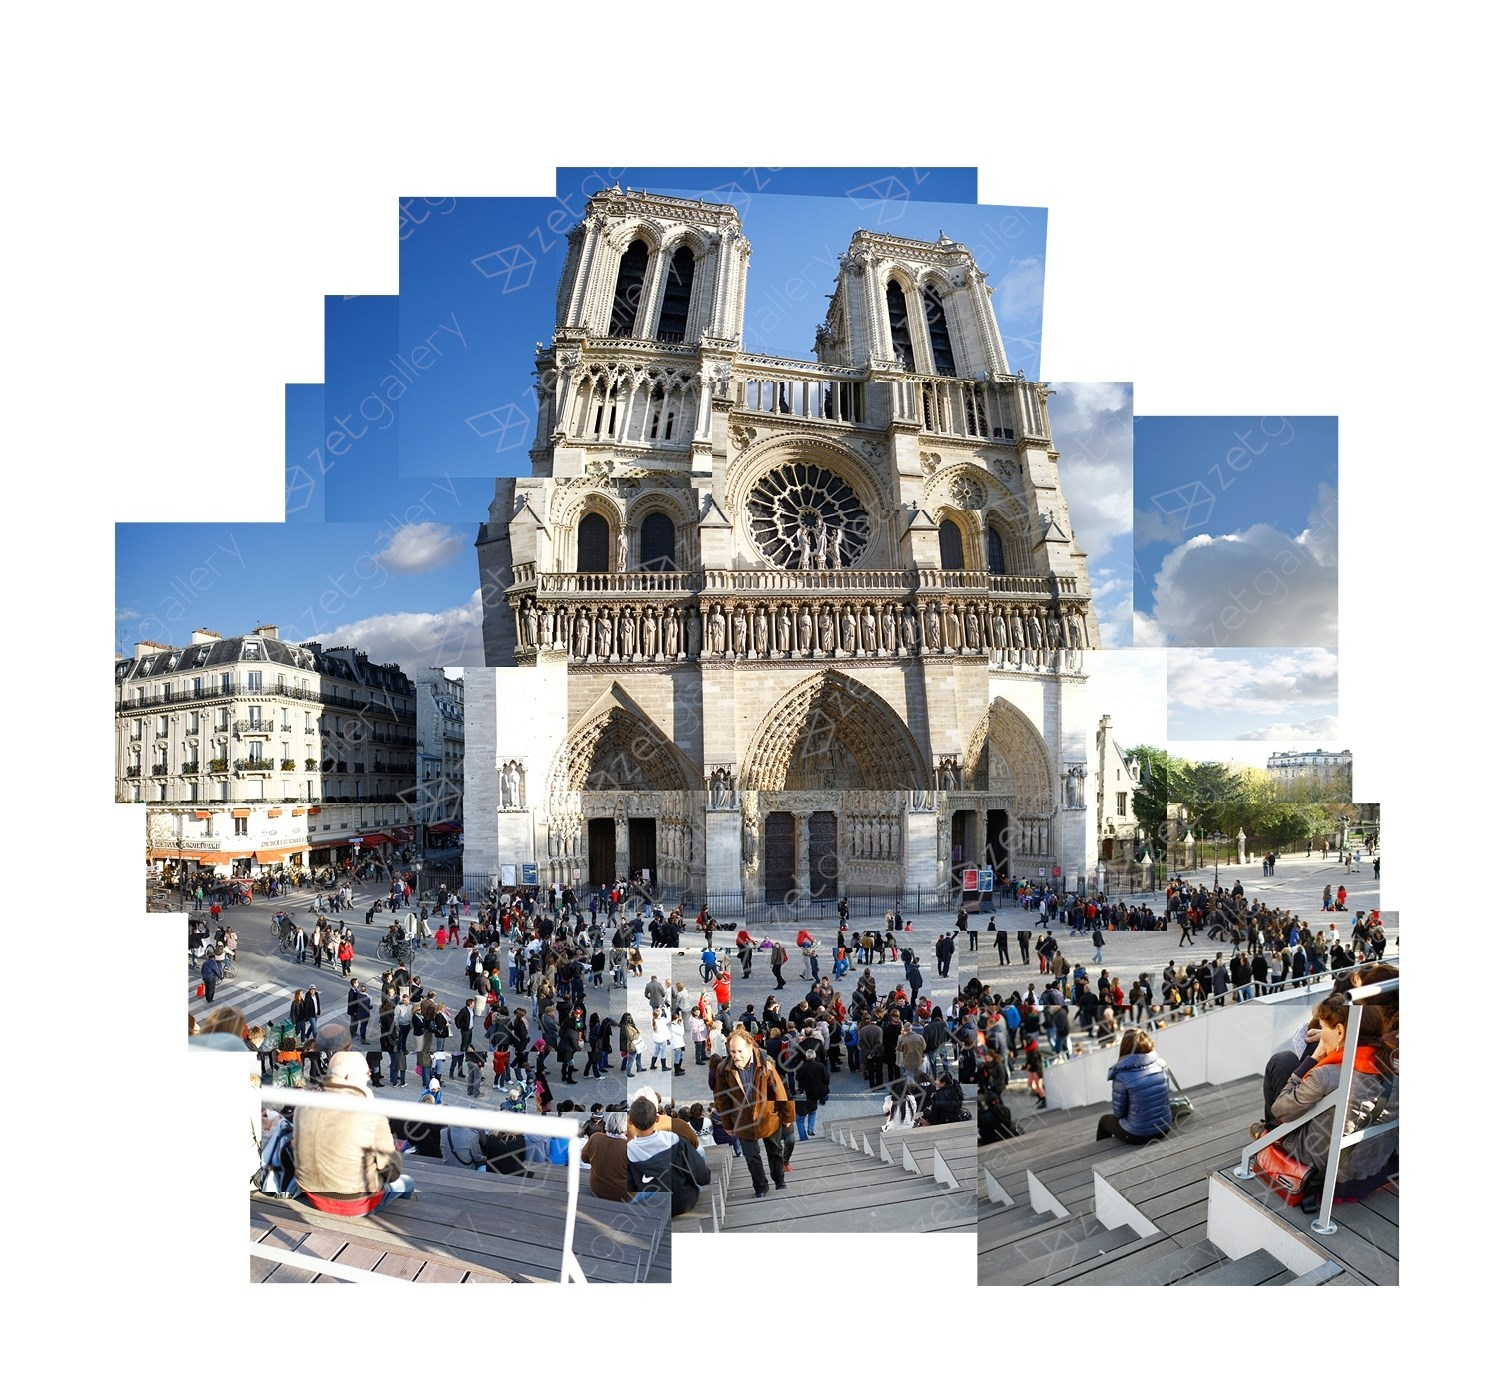 Projeto Panoramas – Paris, original Places  Photography by Daniel Camacho